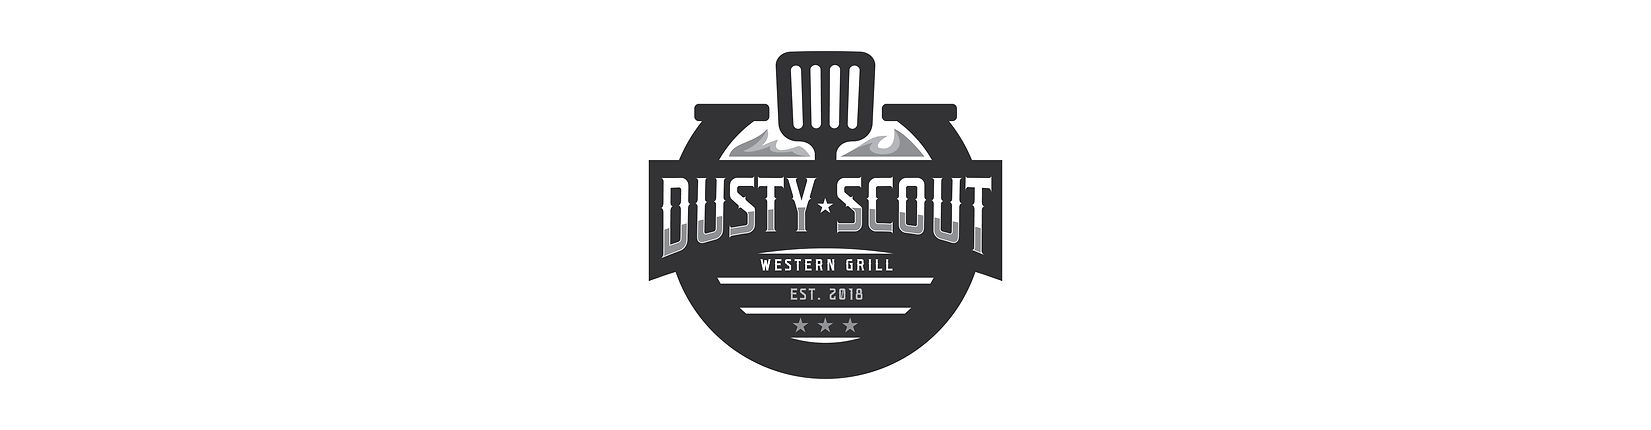 DustyScoutGCPort@2x.png